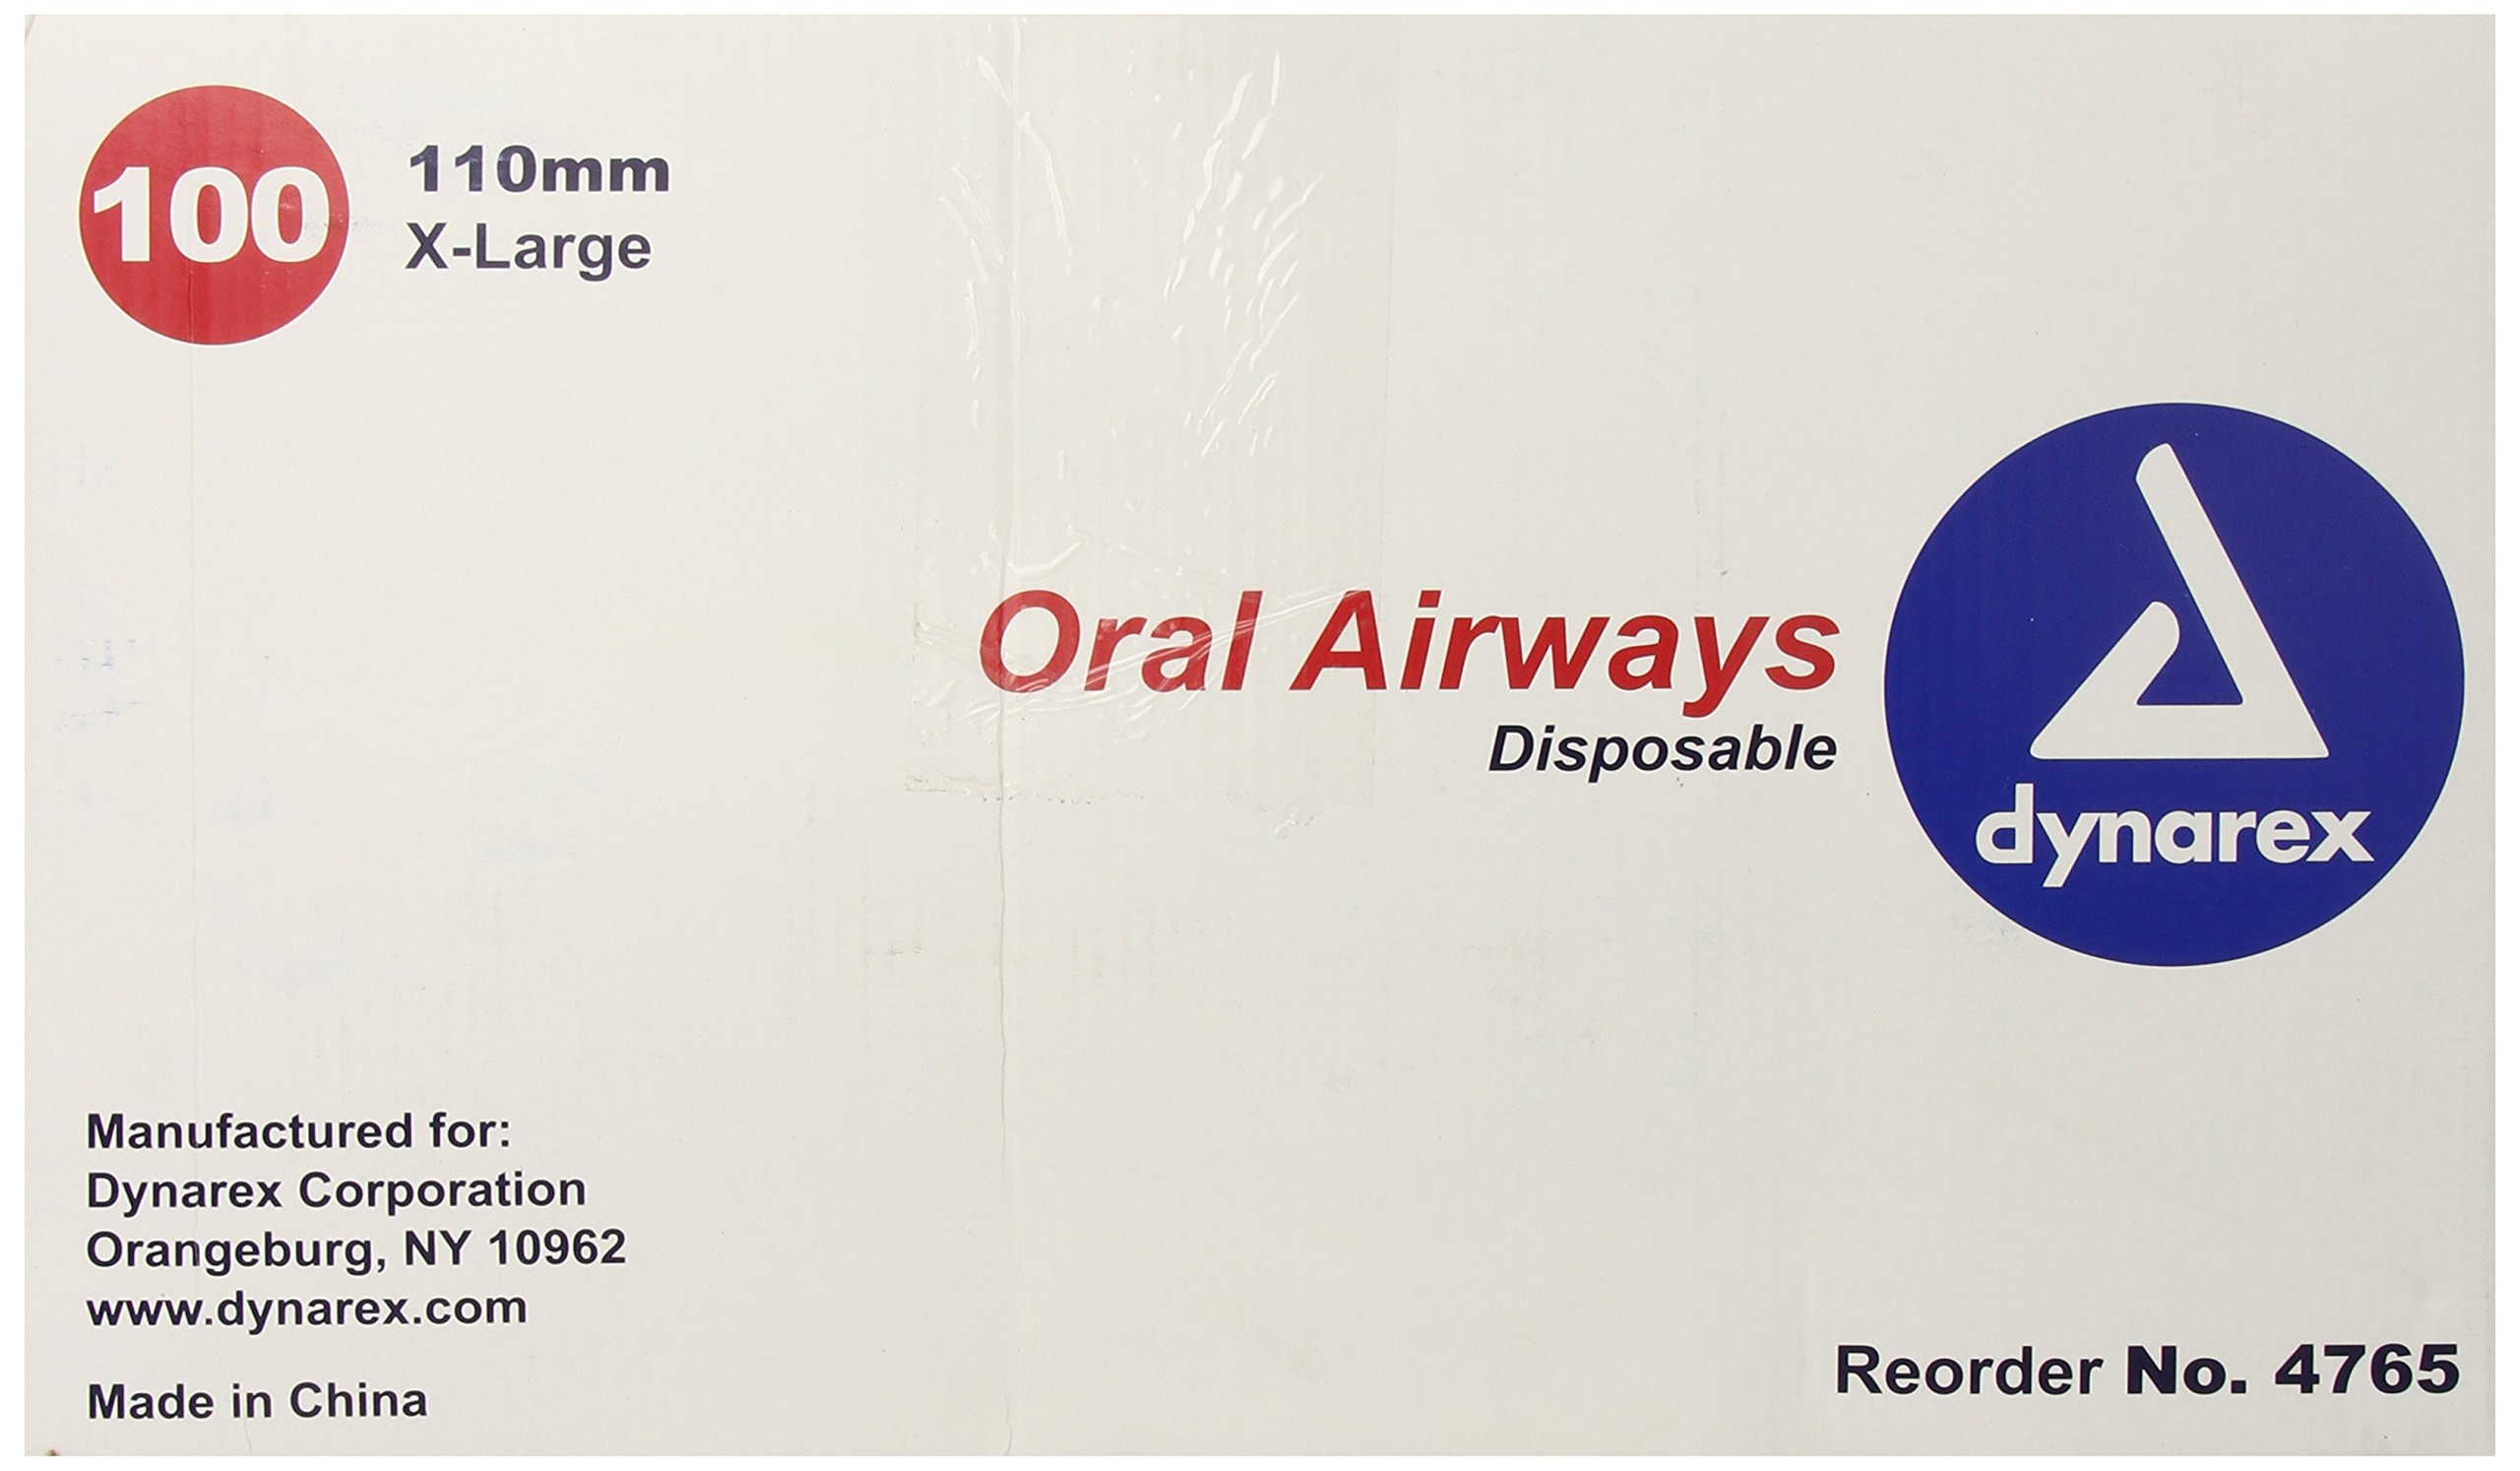 Dynarex Oral Airways (Berman Type) 110mm, X Large Orange 100/Cs by Dynarex